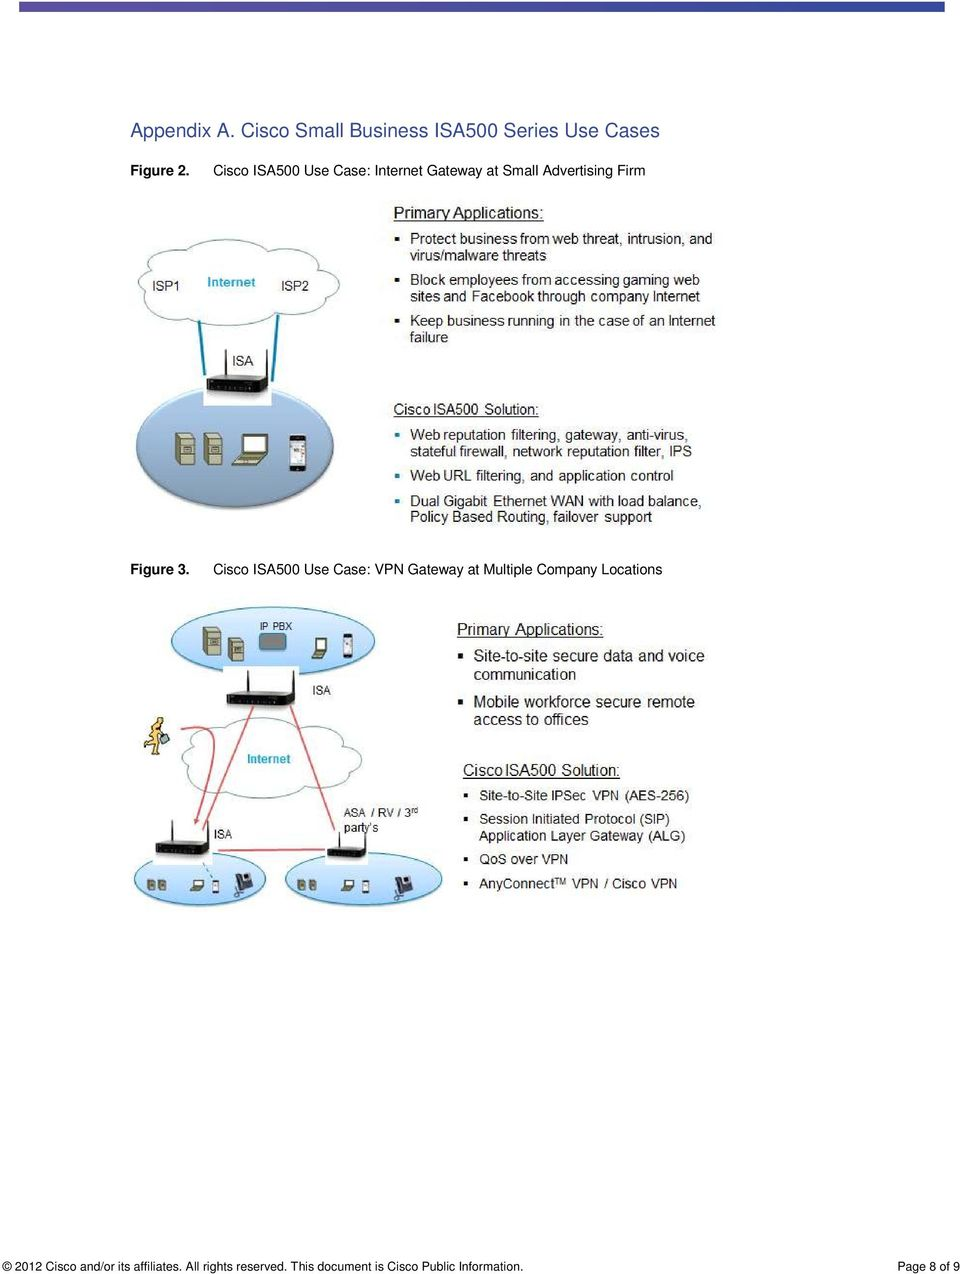 Cisco Small Business ISA500 Series Integrated Security